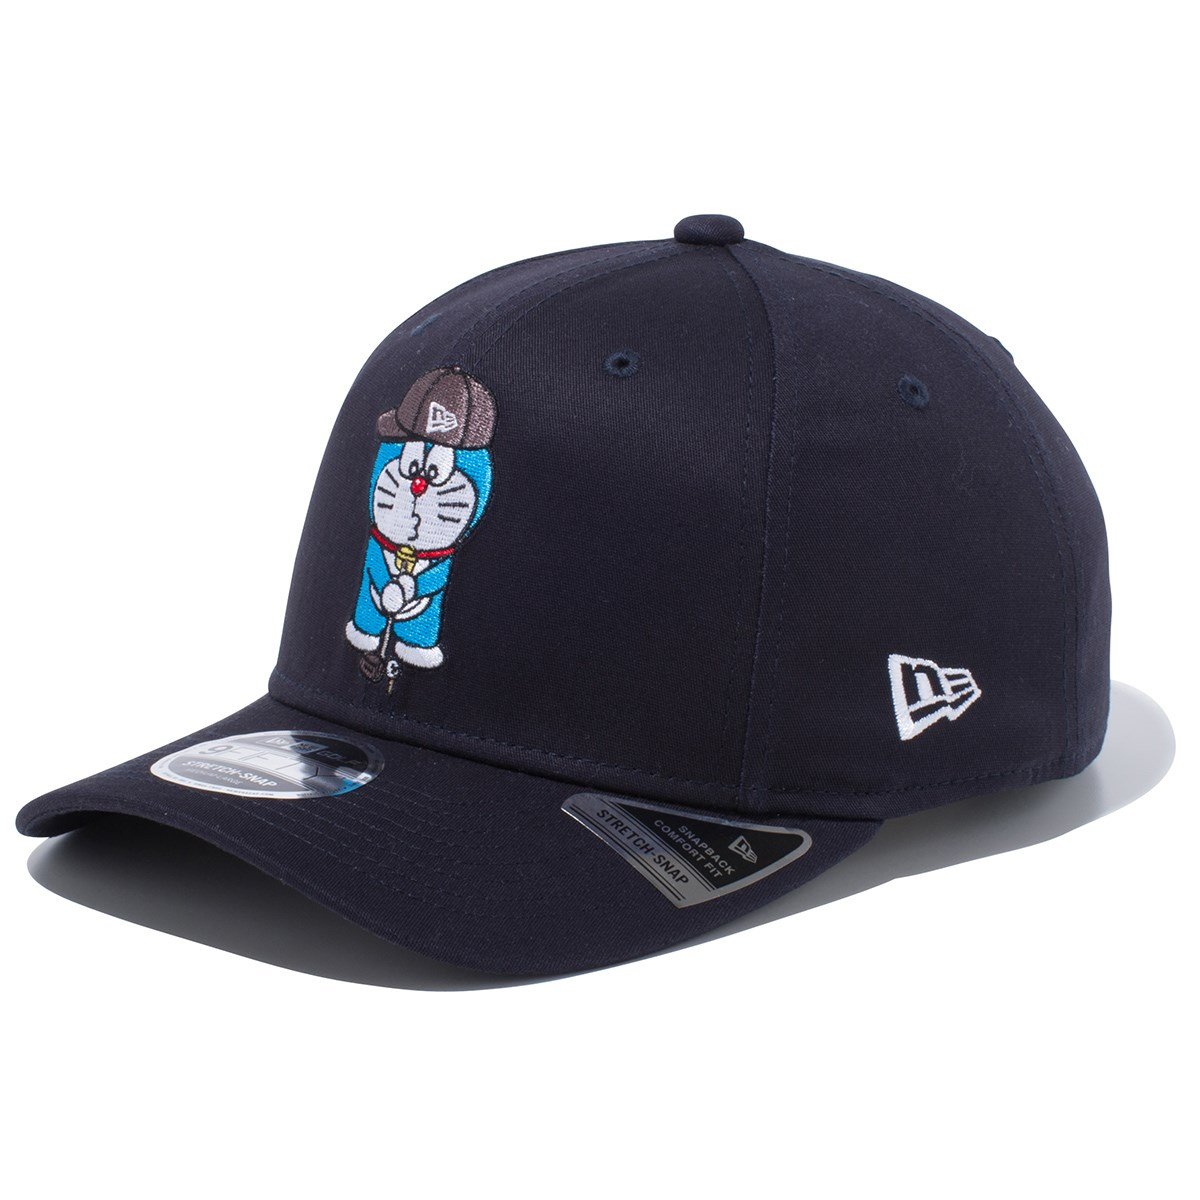 ニューエラ NEW ERA GOLF 950 SS DORAEMON GOLF POSE キャップ ML ネイビー